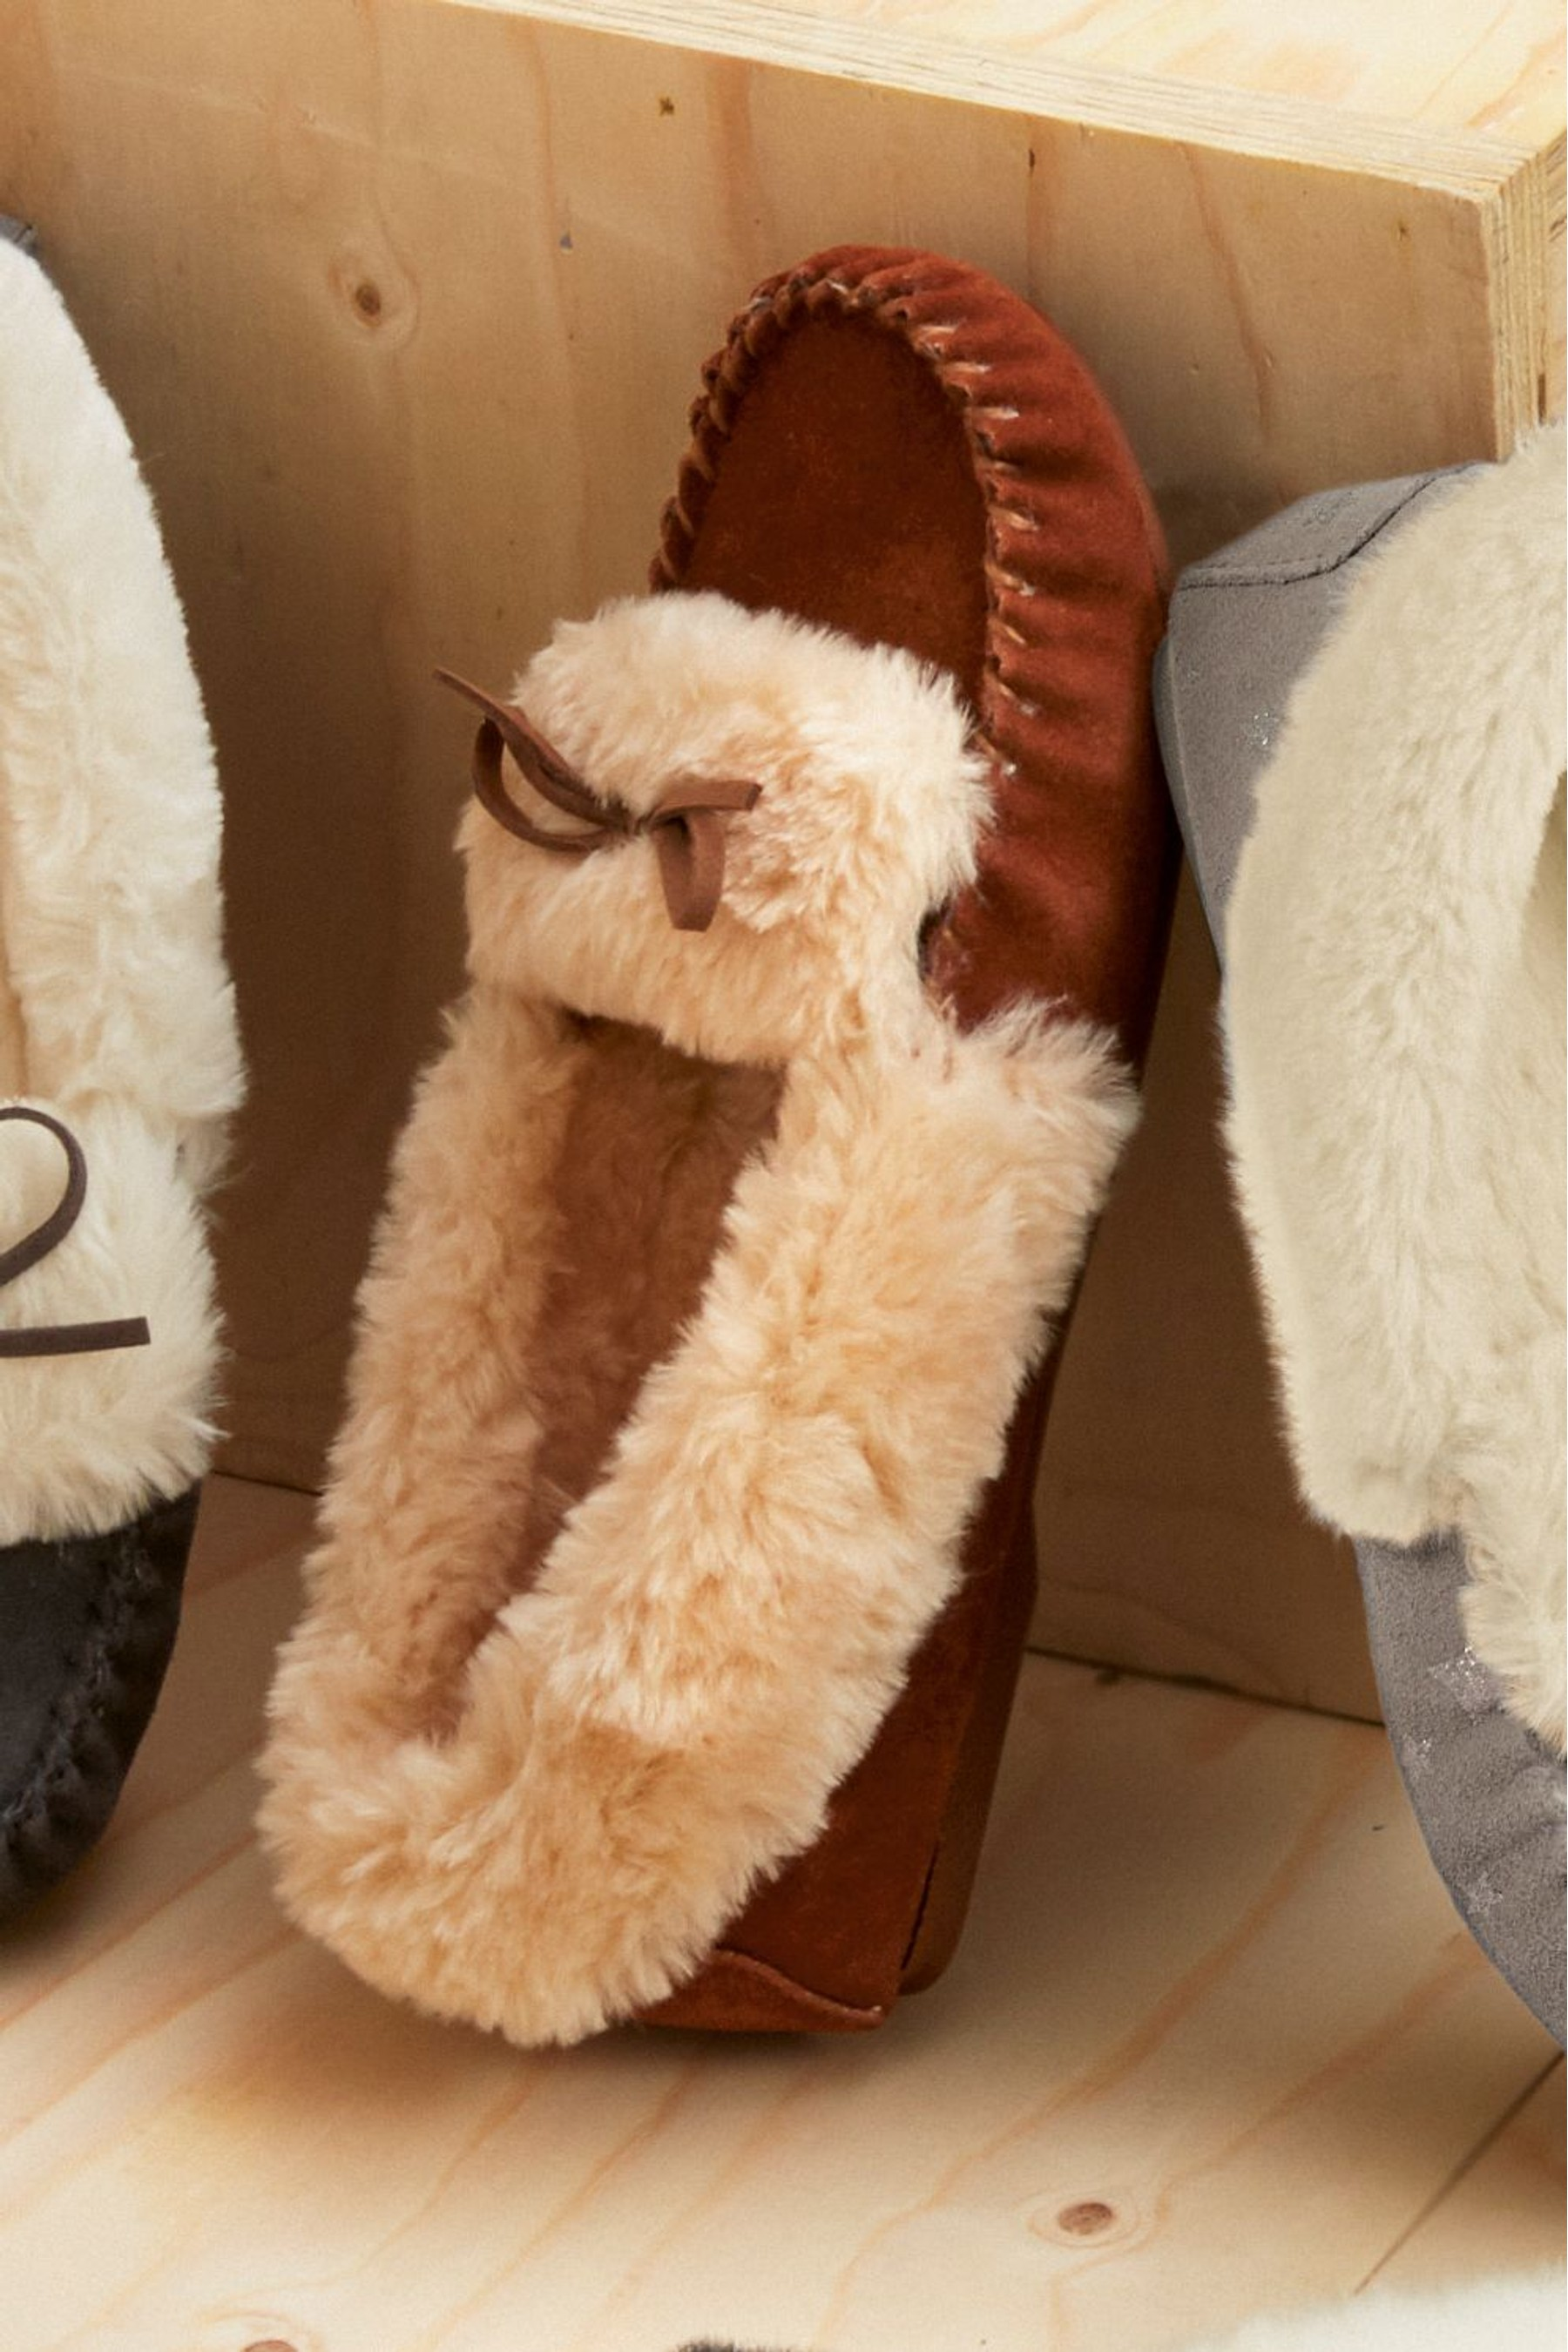 Womens Next Suede Moccasin Slippers - Grey Next QGQoyqOHkY